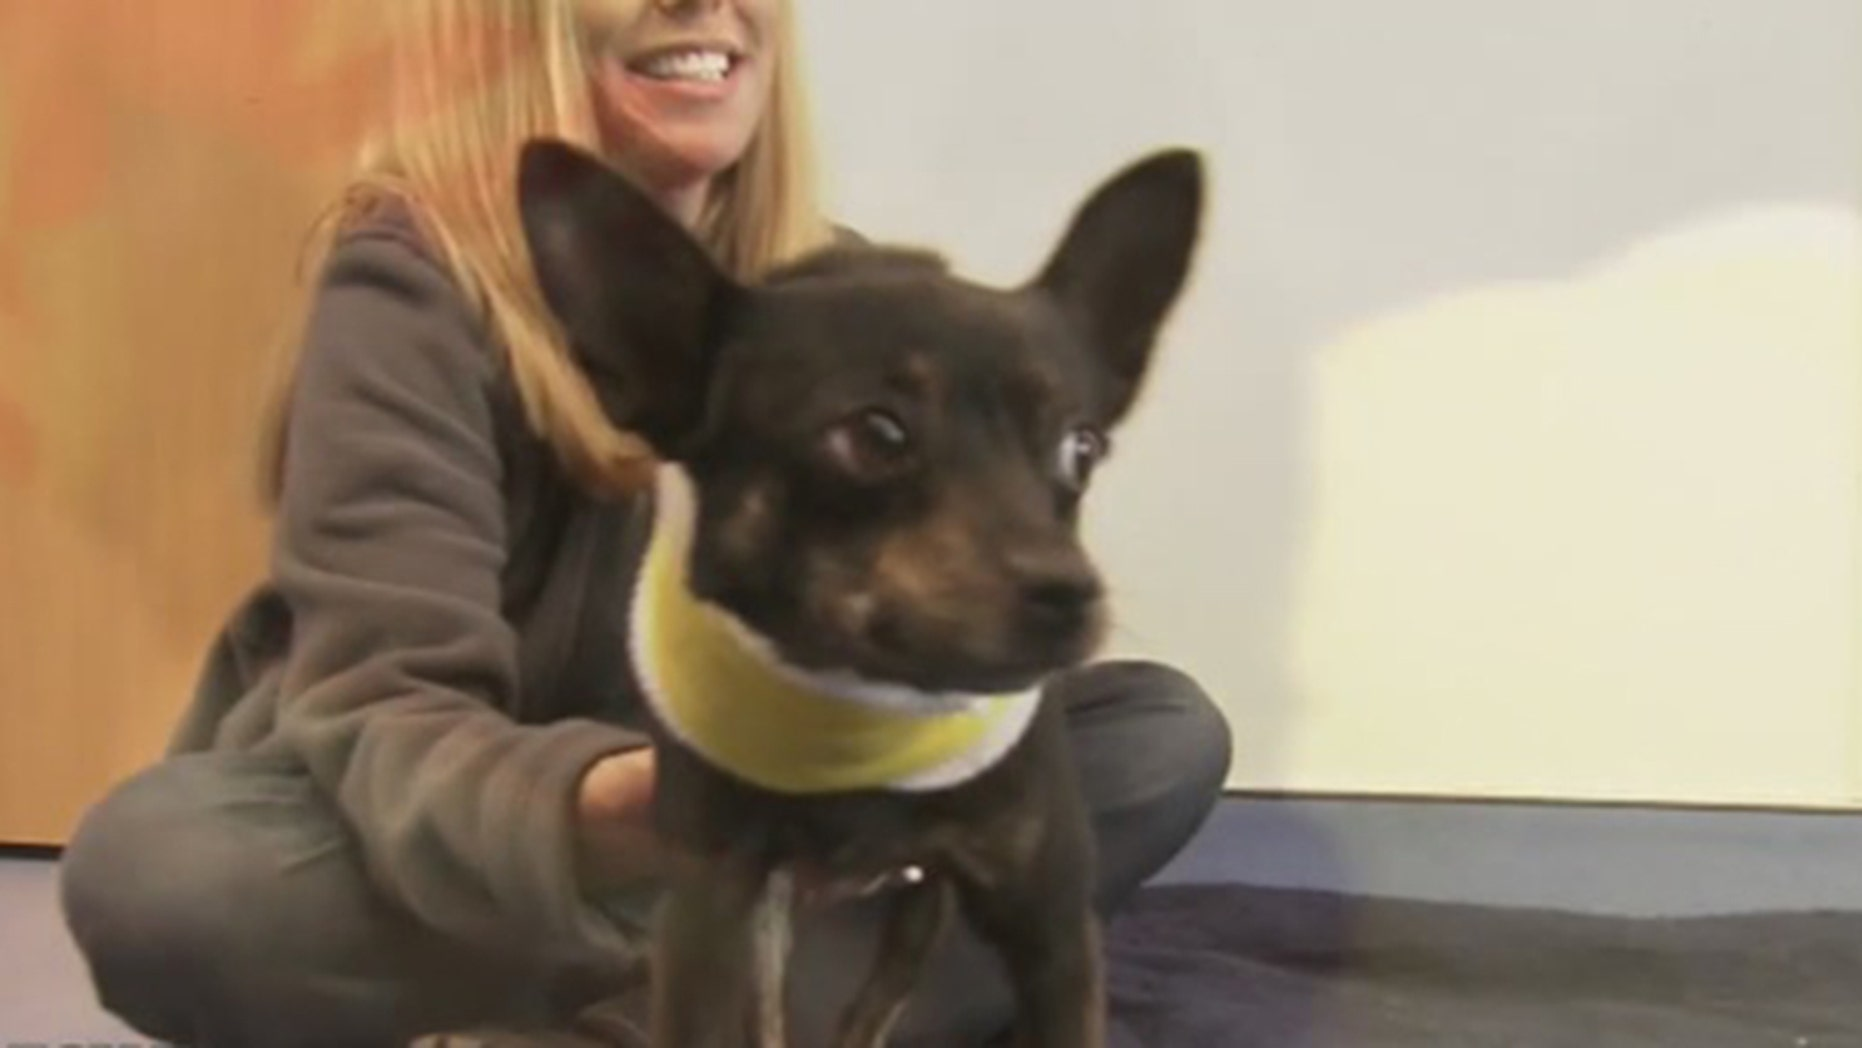 Poncho, a stray dog in Georgia, was brought to DeKalb County Animal Services when he was found with a cord wrapped around his neck and a torn trachea.